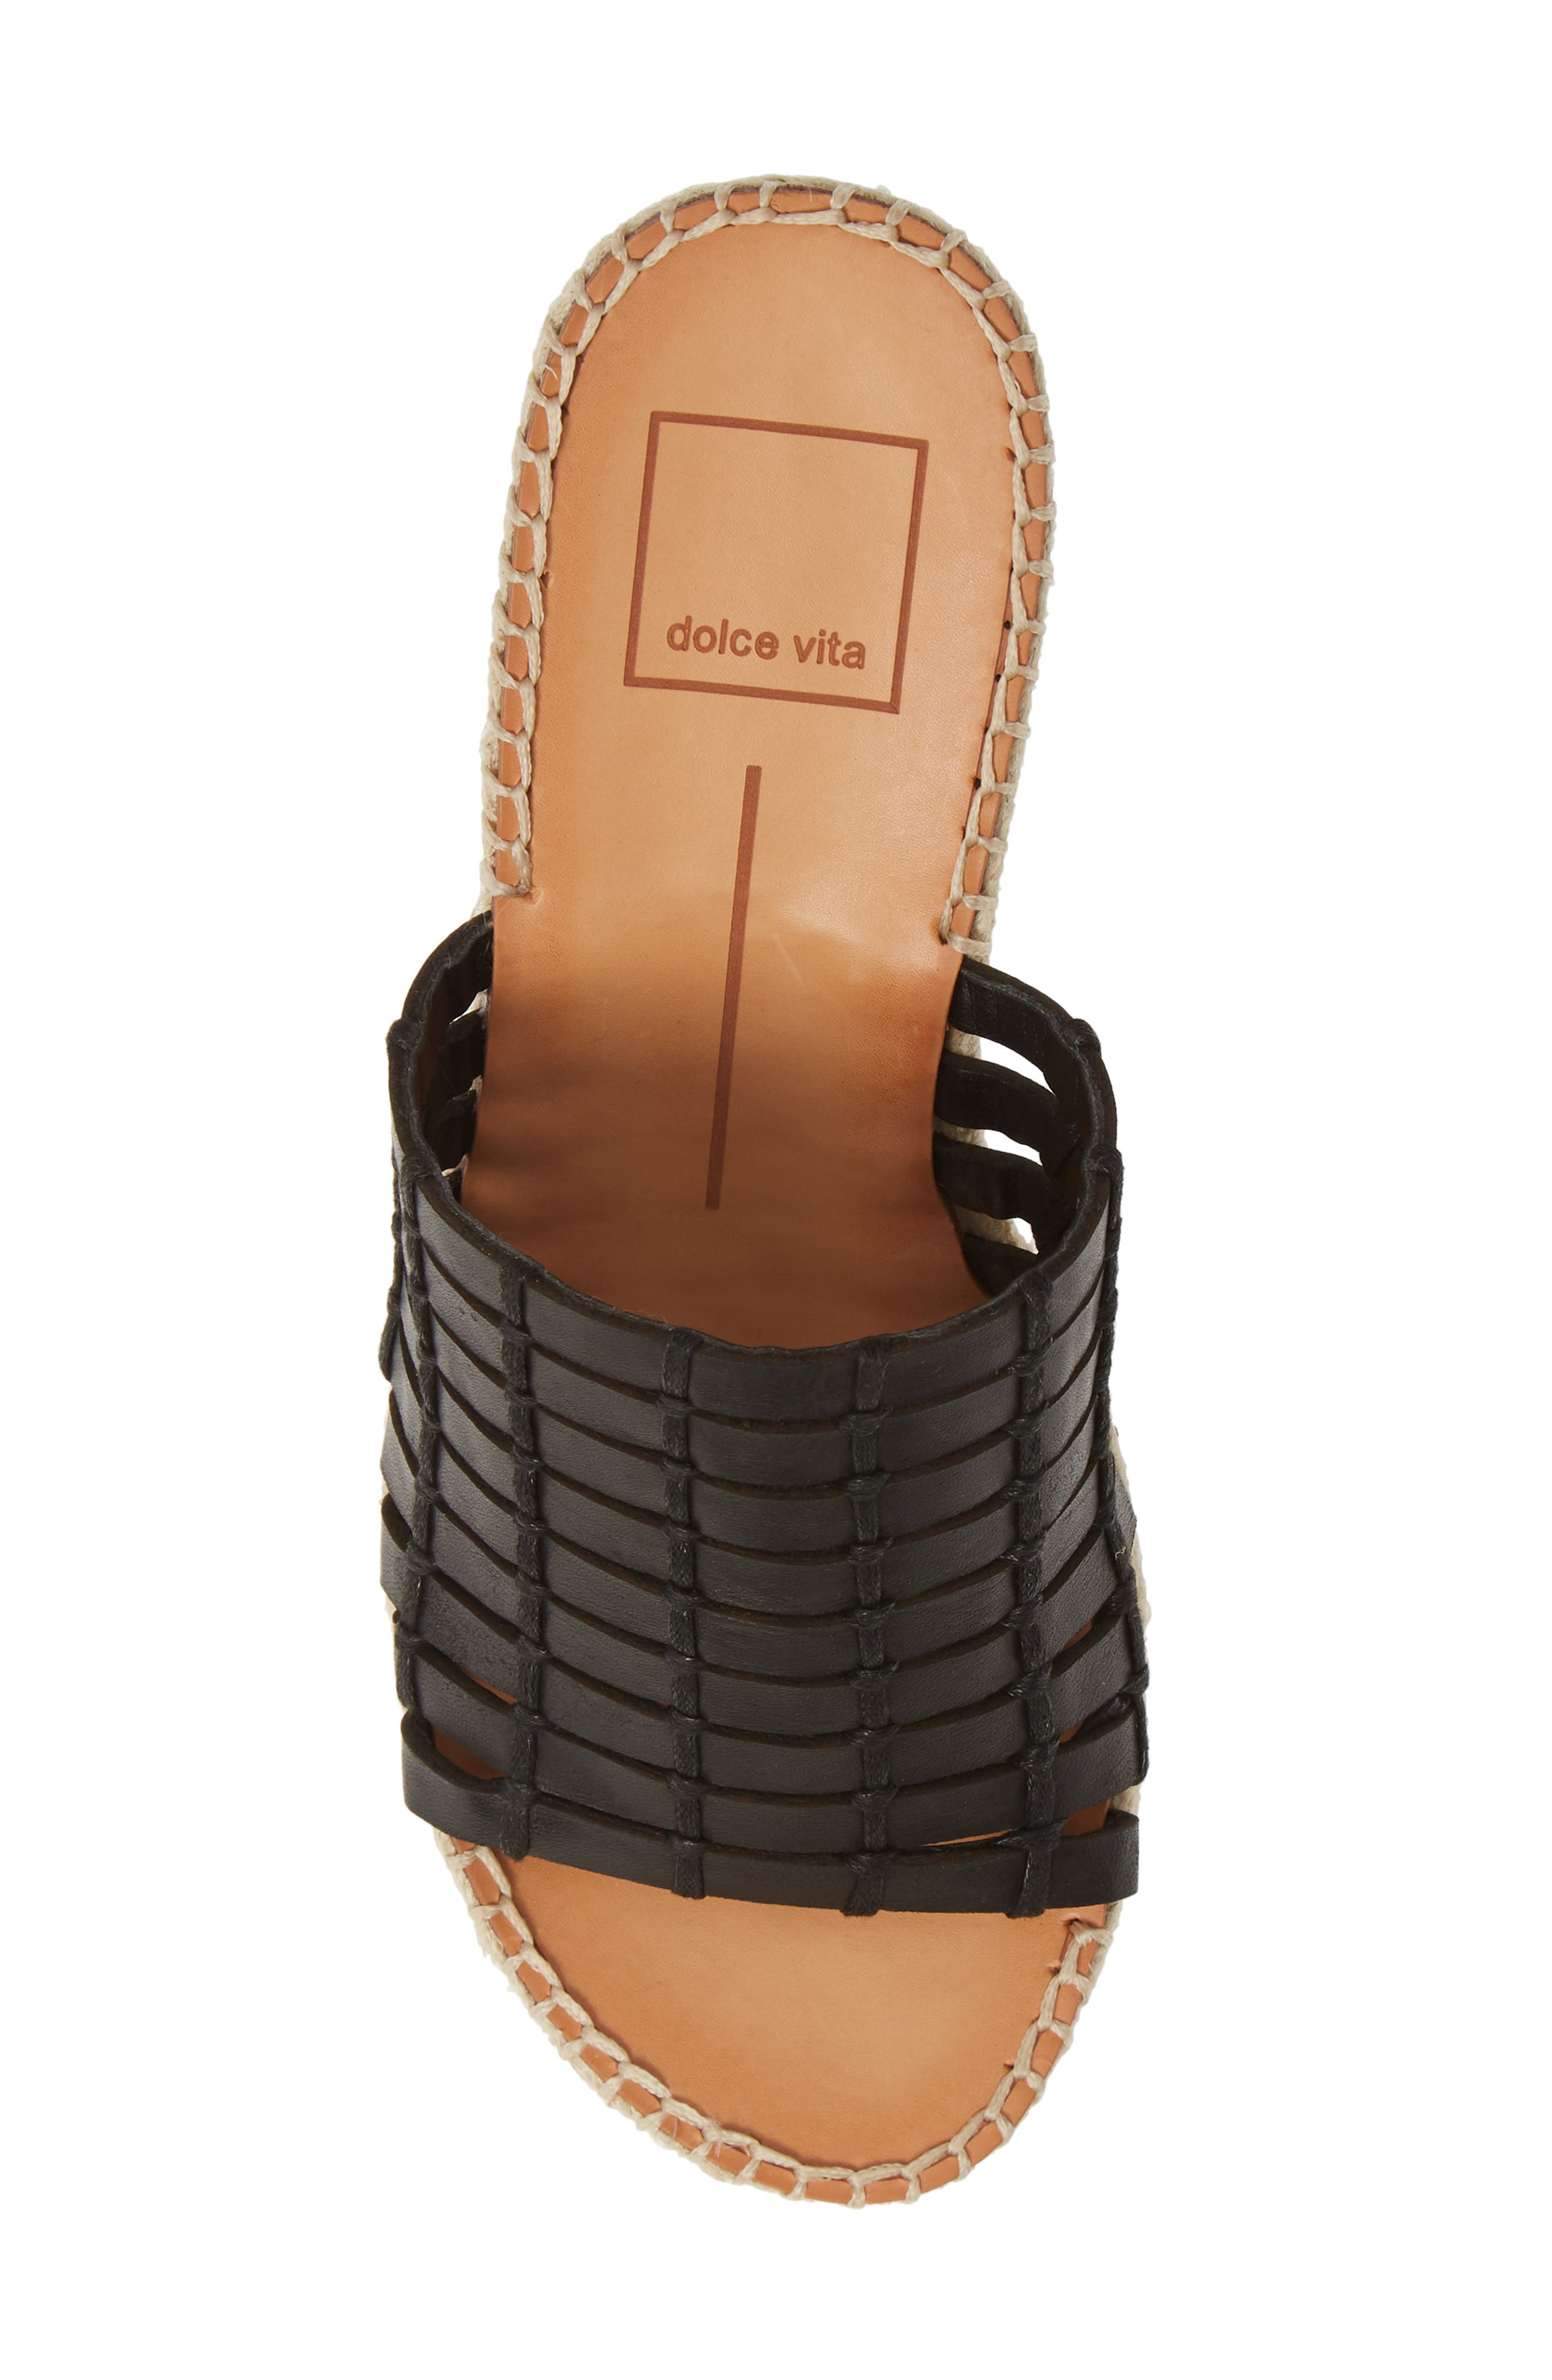 DOLCE VITA, Prue Espadrille Wedge Slide Sandal, Alternate thumbnail 5, color, BLACK LEATHER